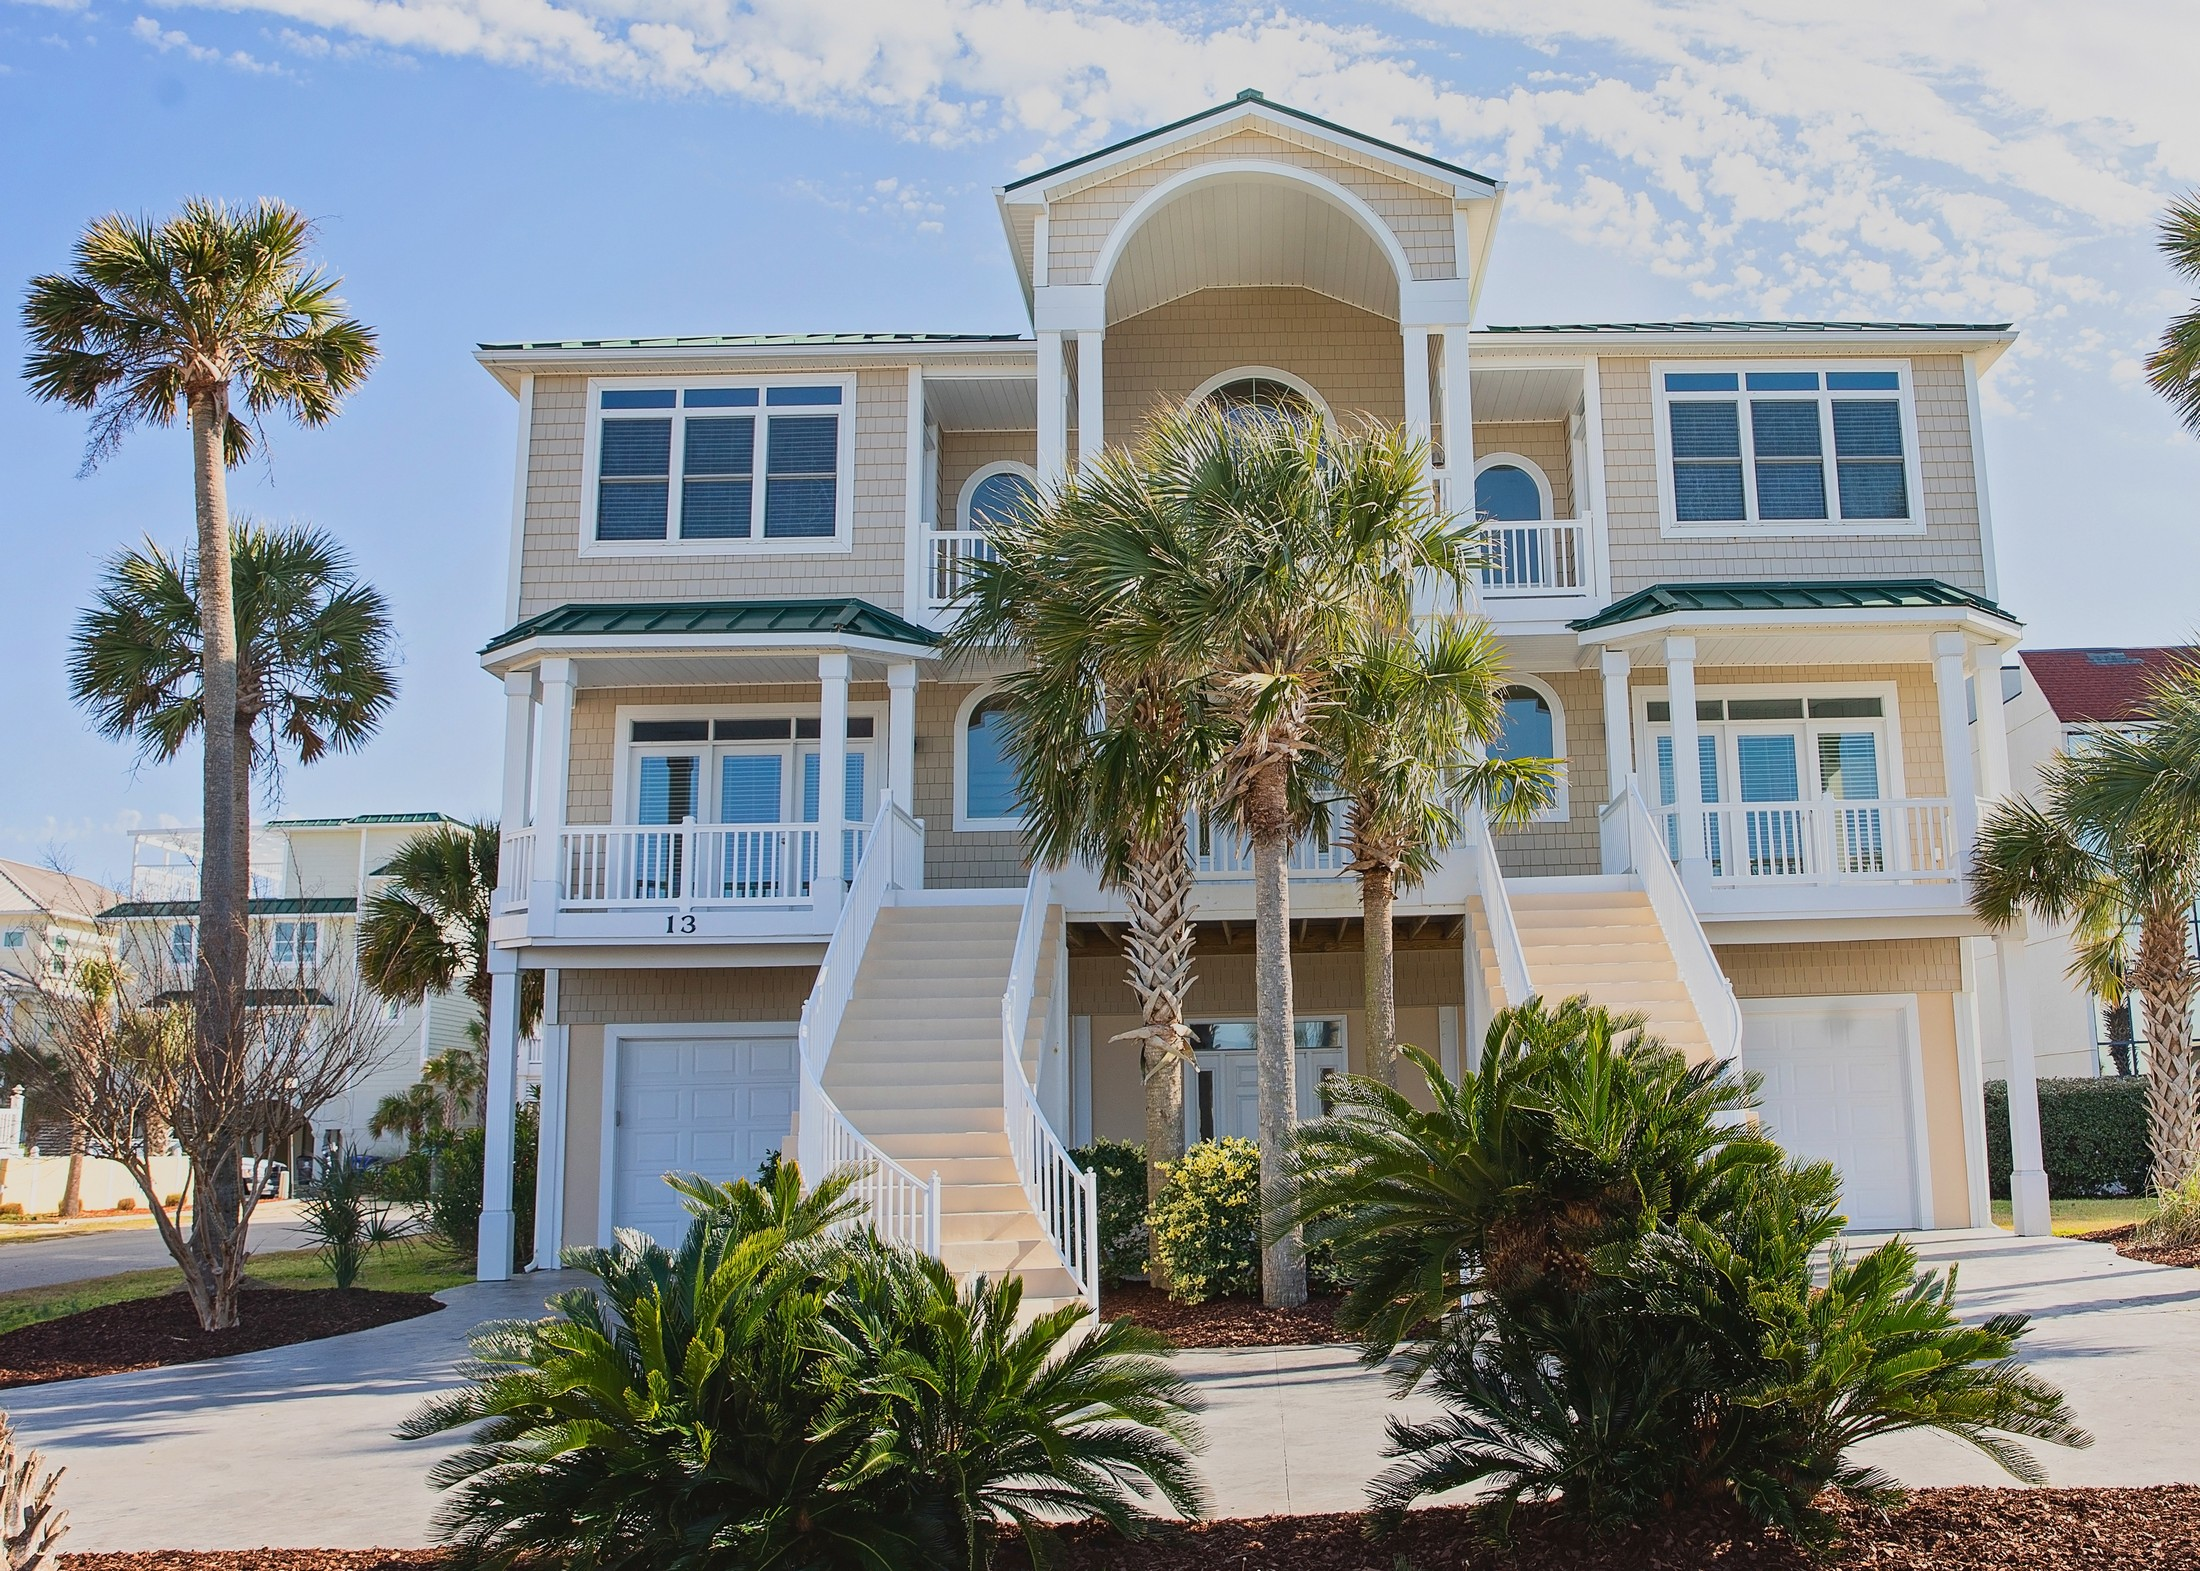 Single Family Home for sale in 13 Coggeshall Drive, Ocean Isle Beach, NC ,28469